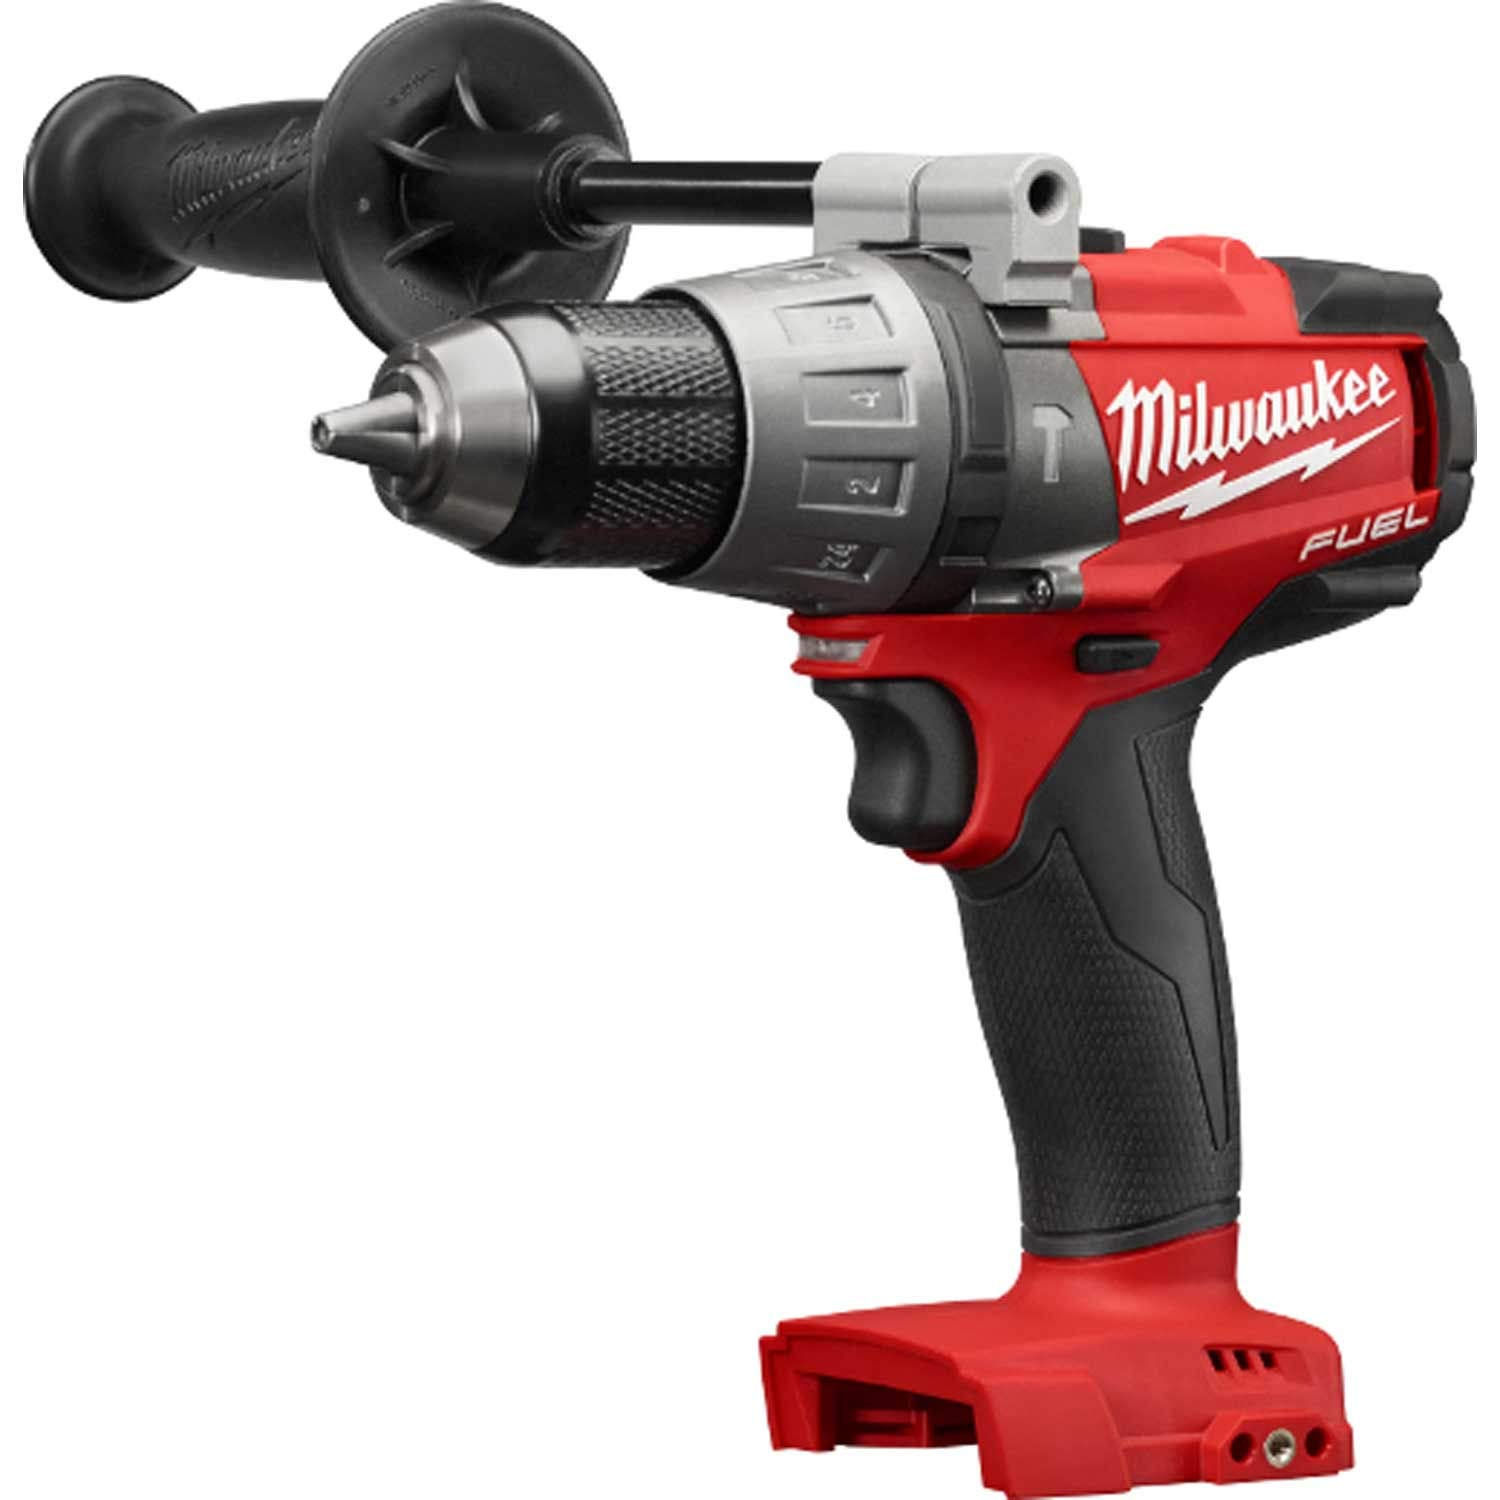 Milwaukee 2804-20 M18 FUEL 1/2 in. Hammer Drill (Tool Only) Tool-Peak Torque = 1,200 by MILWAUKEE ELECTRIC TOOLS CORP (Image #1)